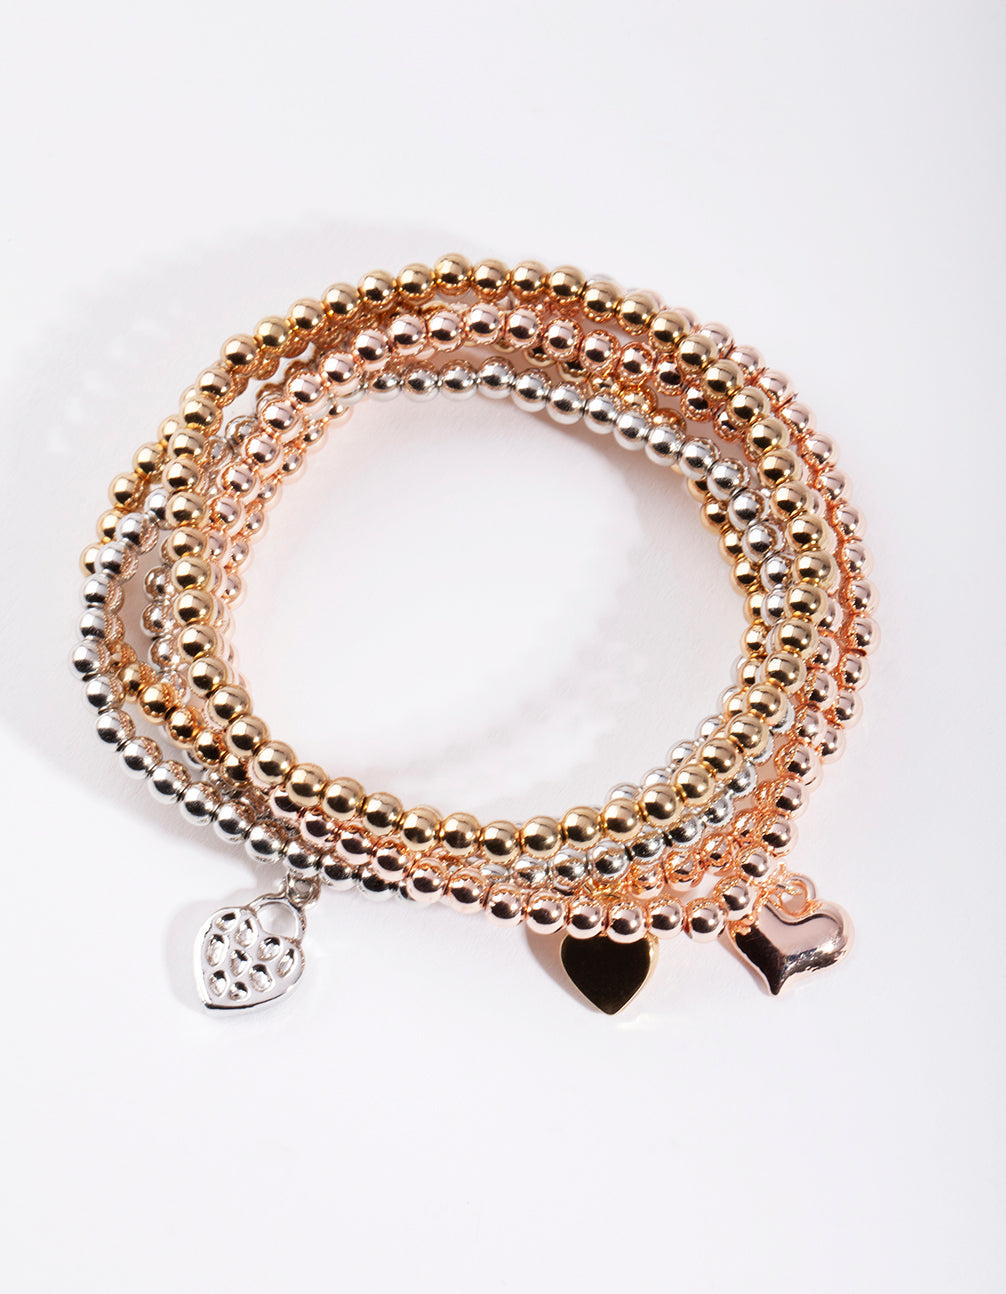 Mixed Metal Heart Bracelet 6 Pack